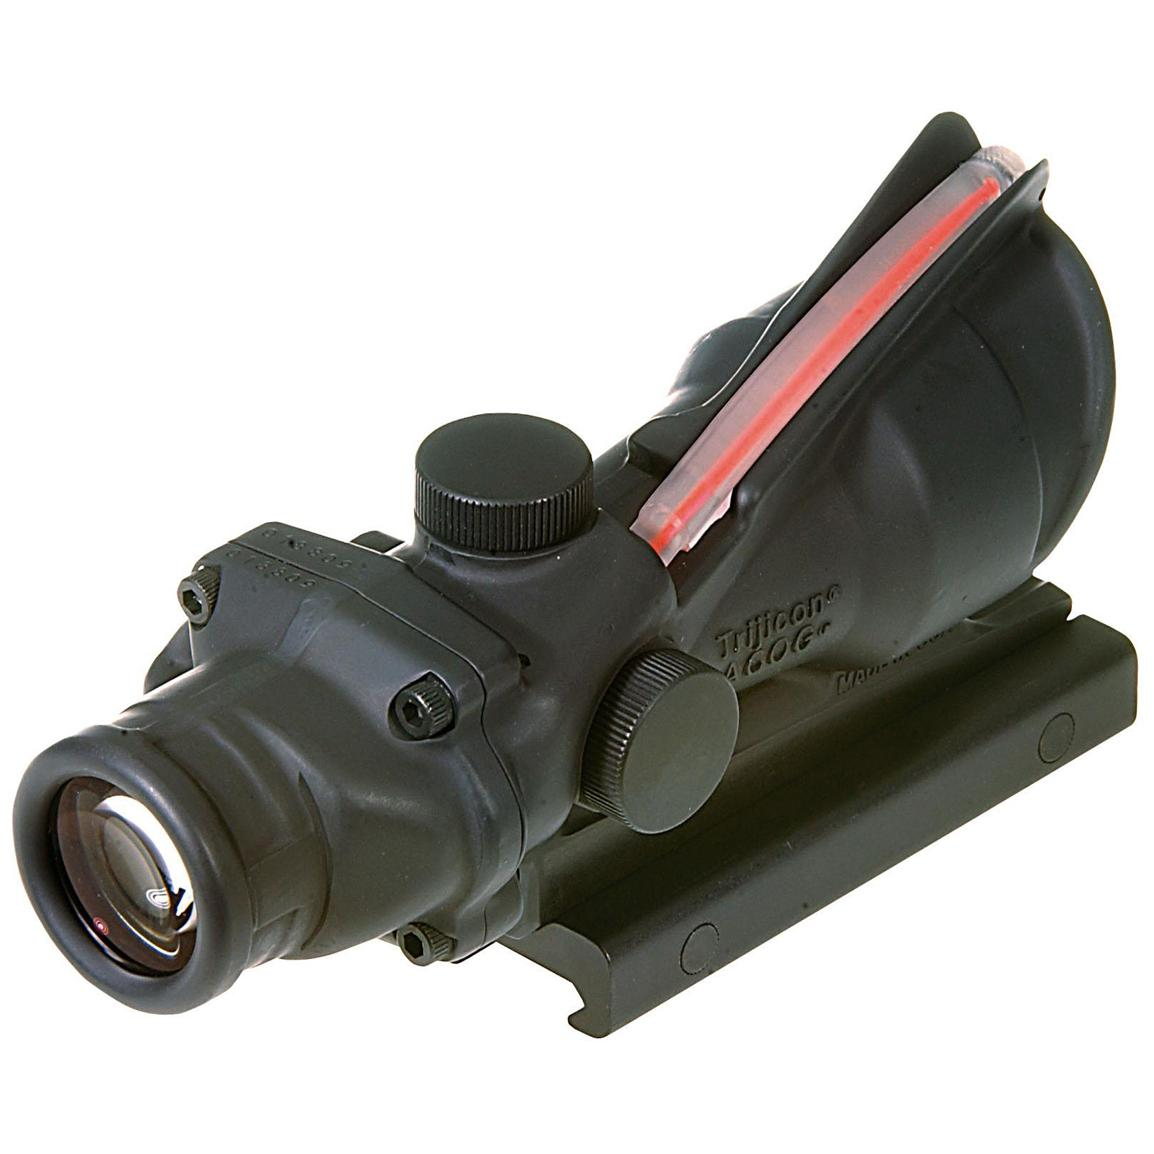 Trijicon ACOG 4x32 Scope for the M4 with TA51 Mount, 14.5